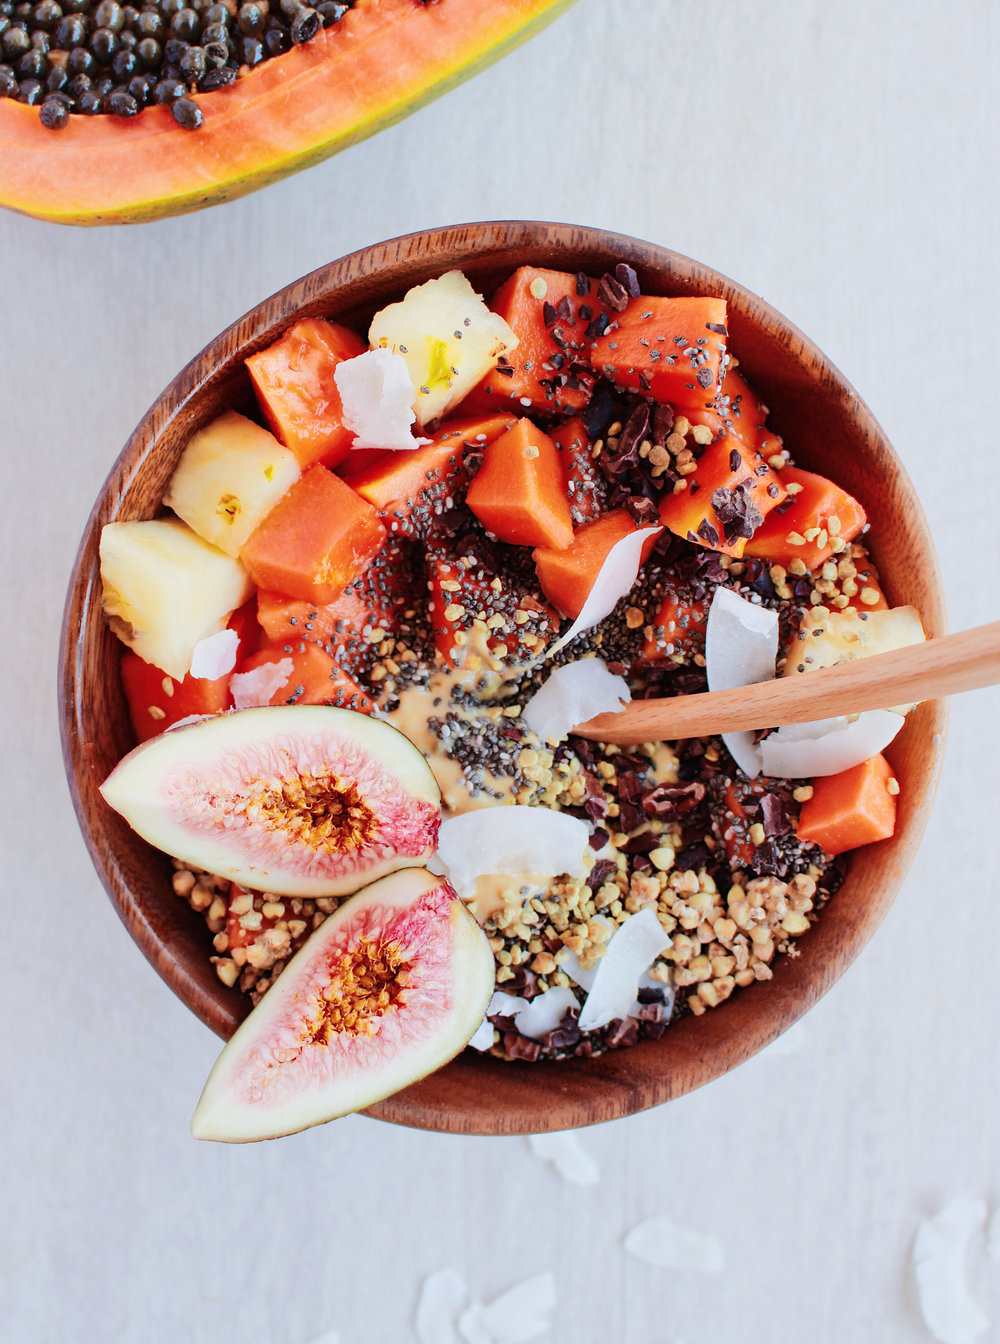 My tropical smoothie bowl topped with buckinis, papaya, cacao nibs & chia seedss